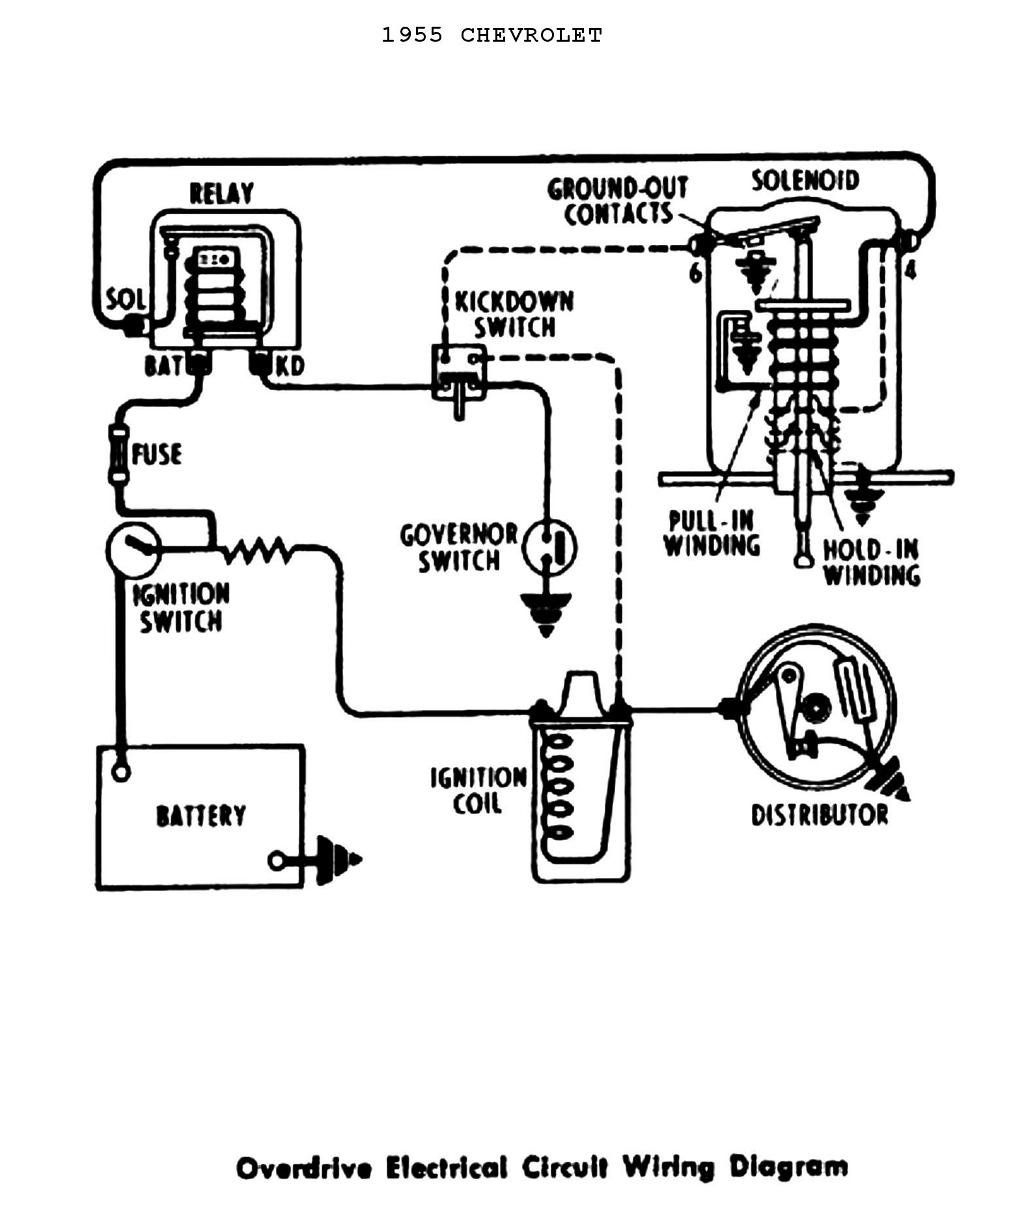 Chevrolet Coil Wiring Diagram - Schema Wiring Diagram - Coil Wiring Diagram